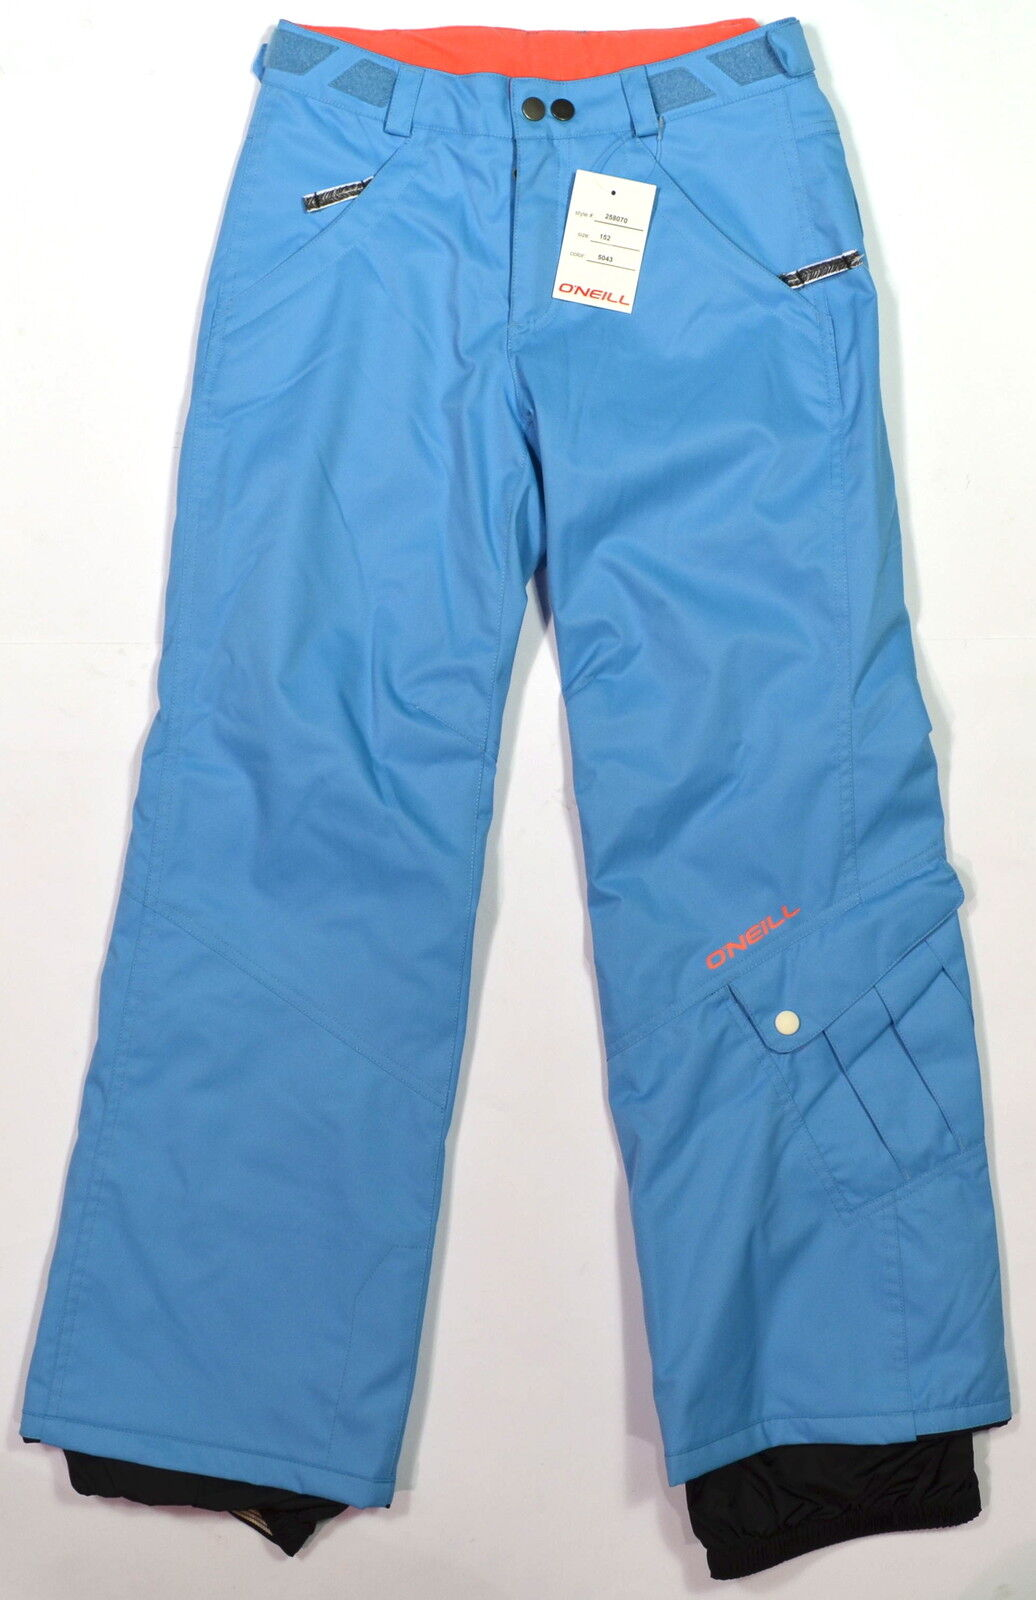 O'Neill FREEDOM SERIES 10K Unisex Youth Snowboard Pants Sz  12 Med.(152) bluee NEW  creative products